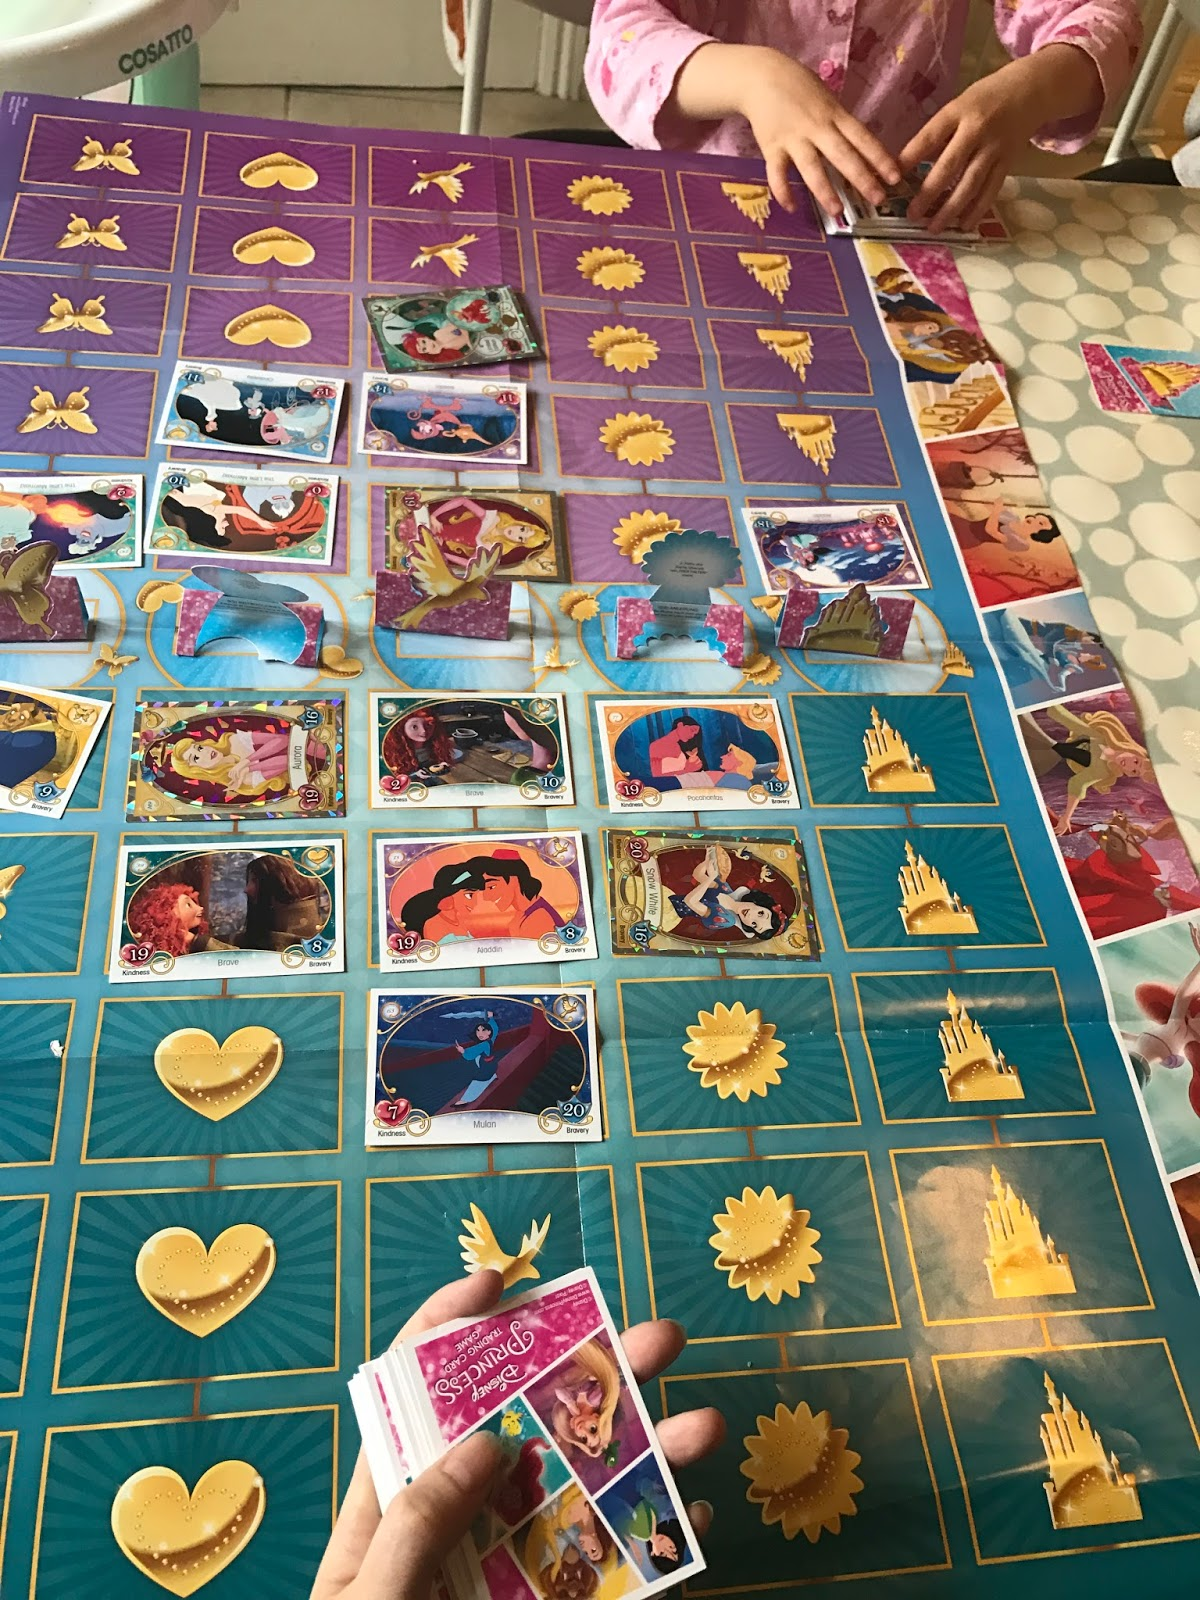 How To Play The Disney Princess Trading Card Game - Counting To Ten